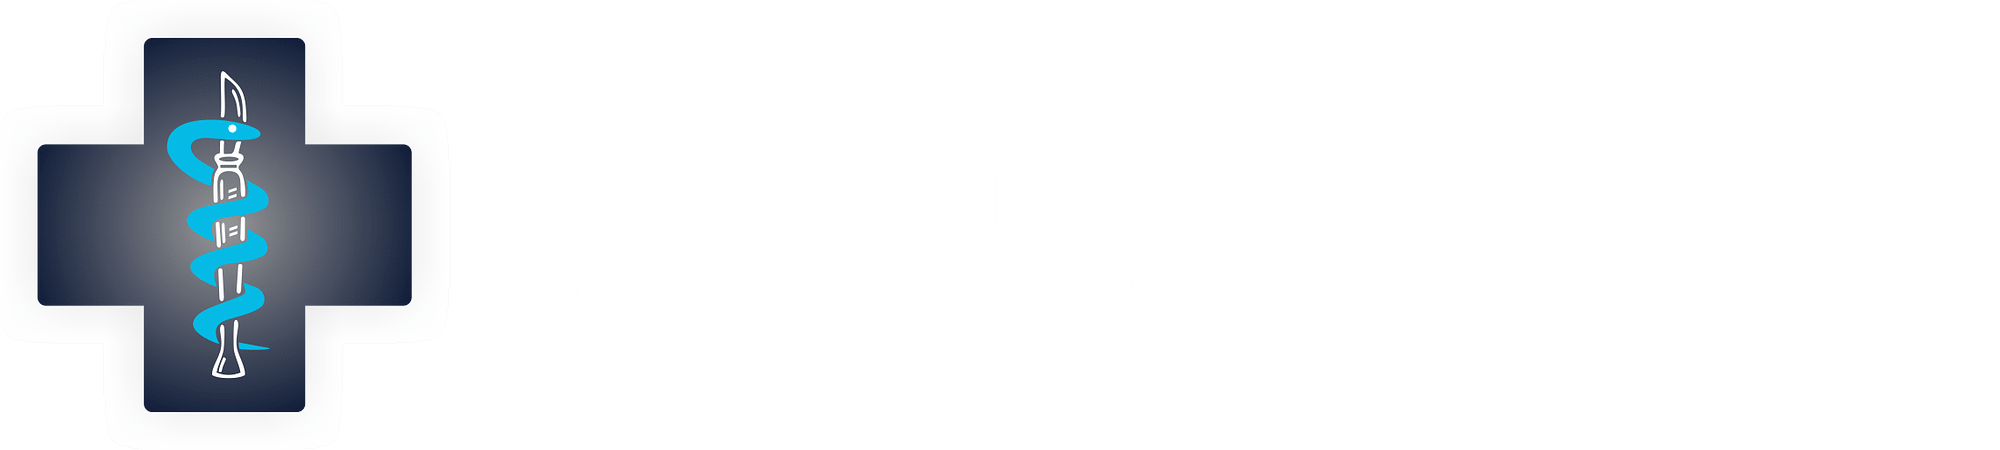 Haris D. Konstantinidis MD – PhD | General Surgeon Logo